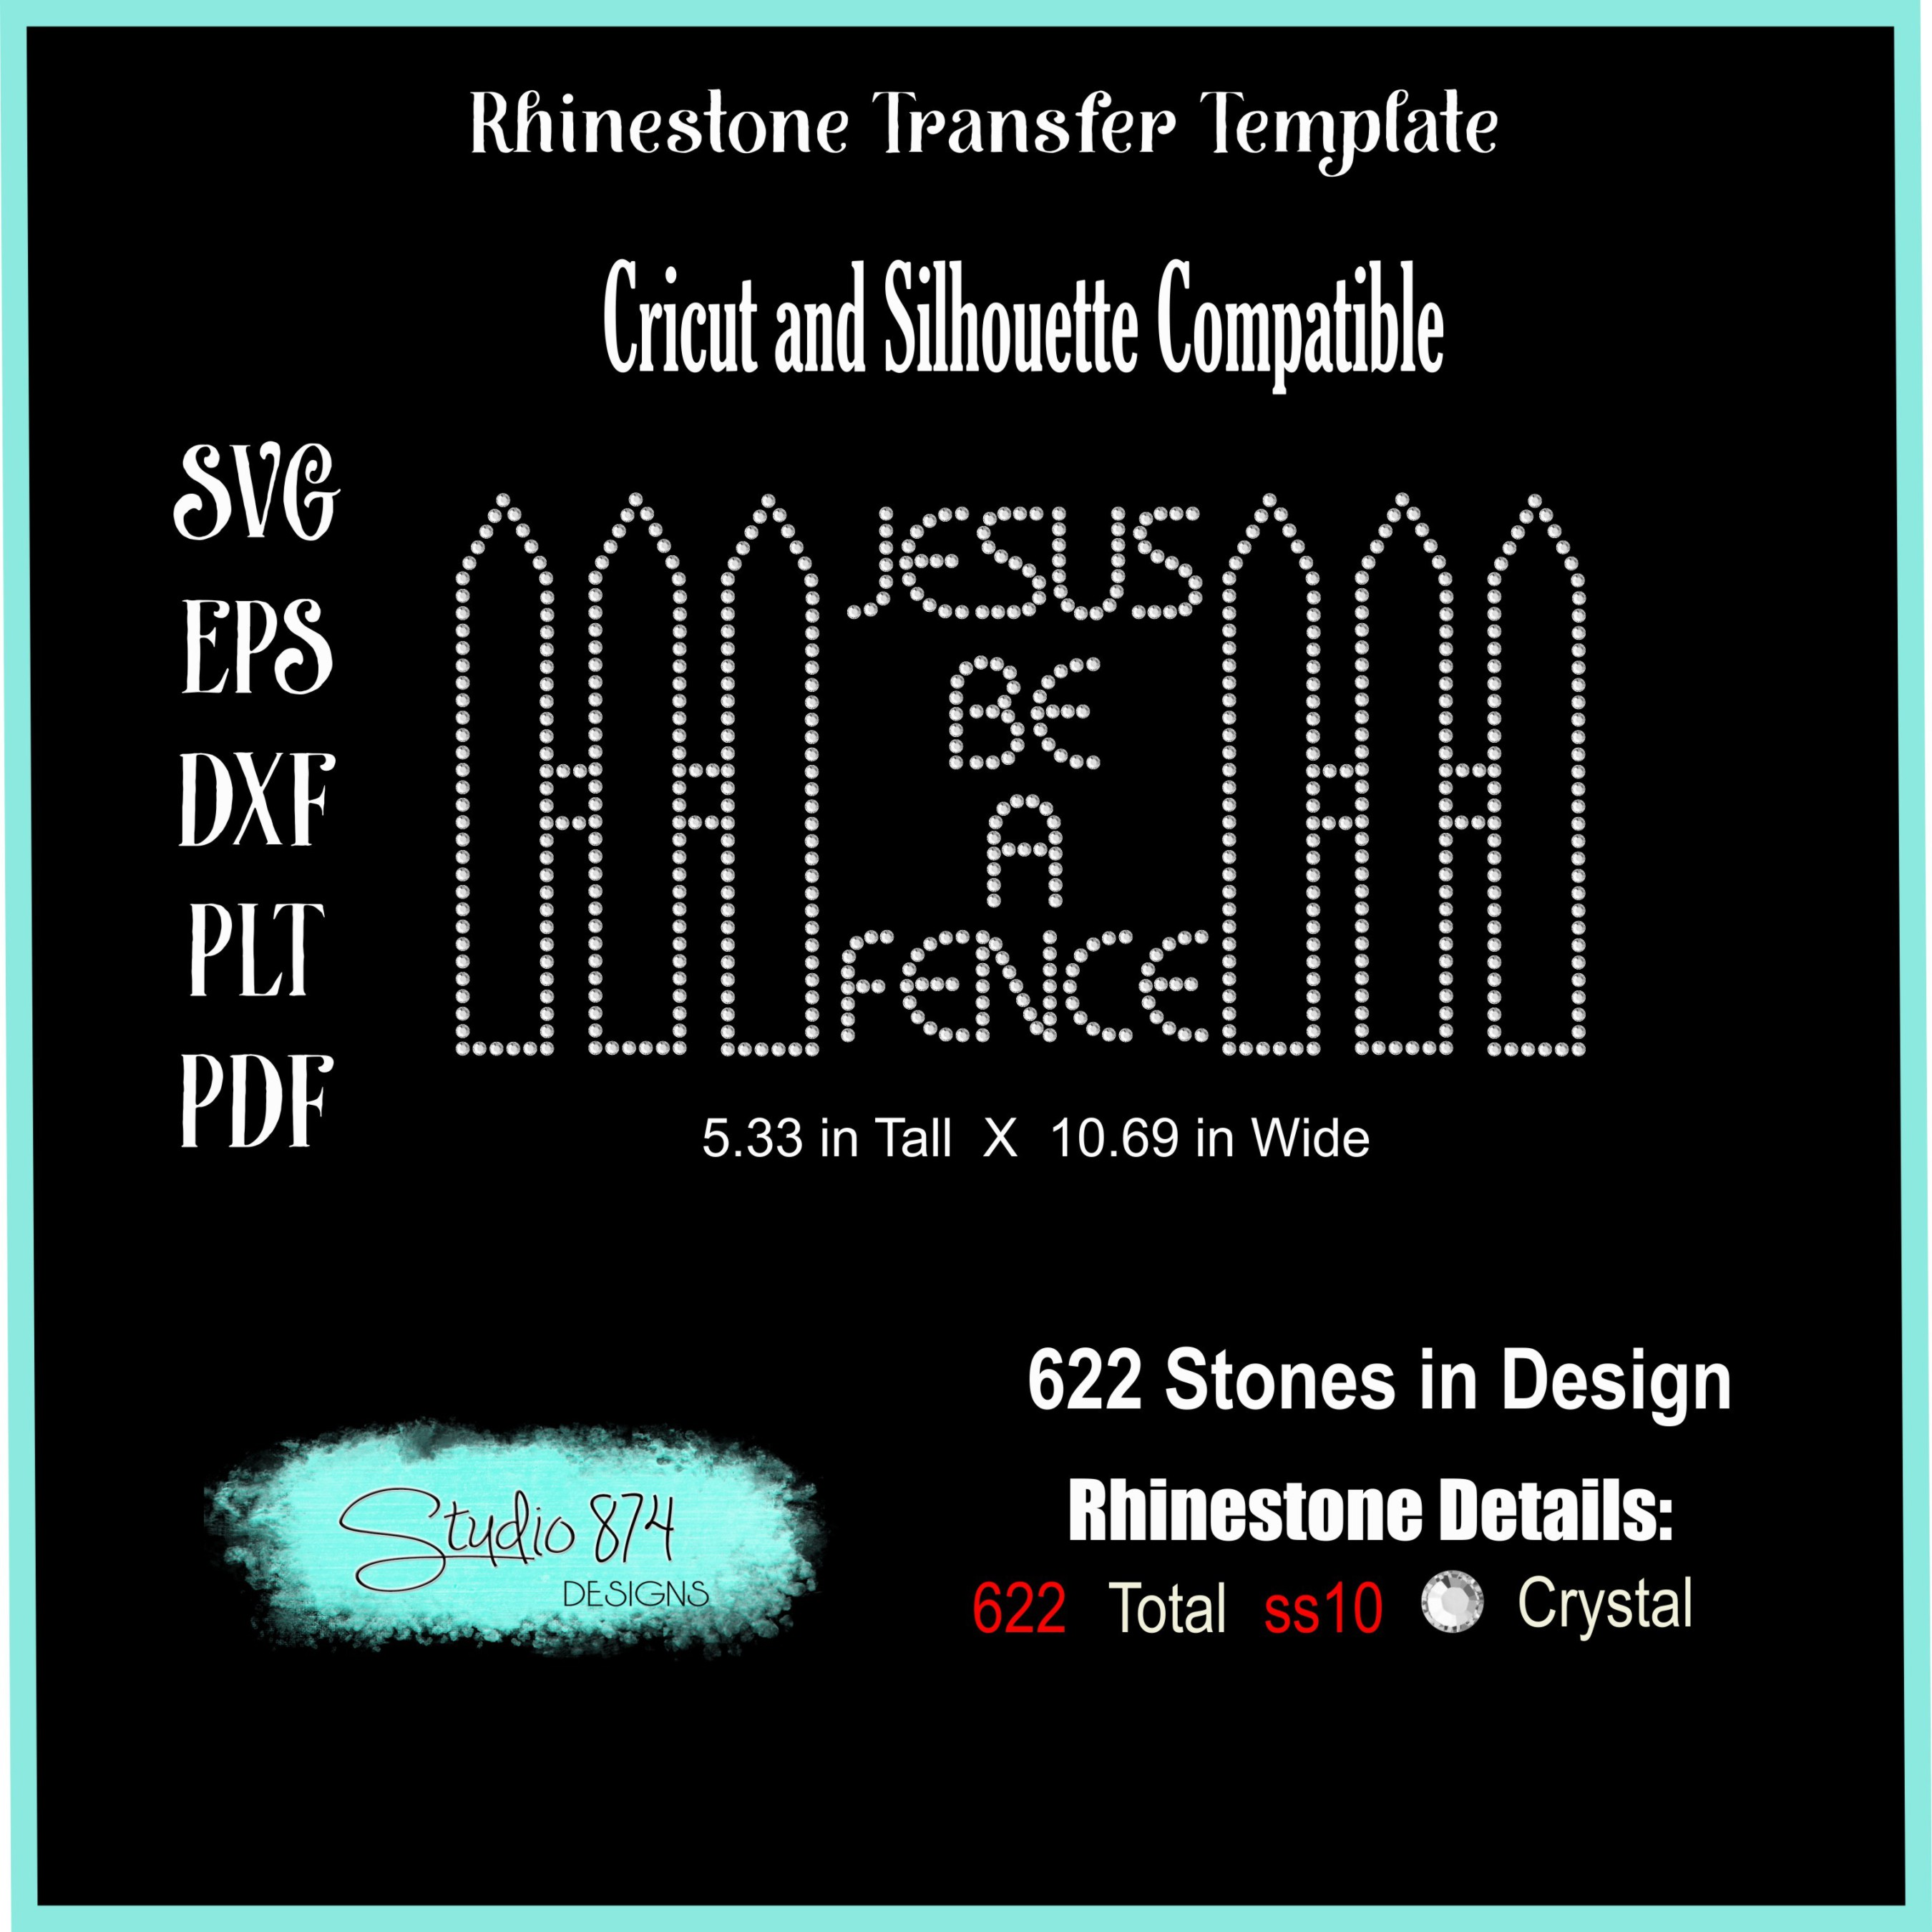 Faith Religious Rhinestone SVG Template - Jesus Be a Fence example image 3